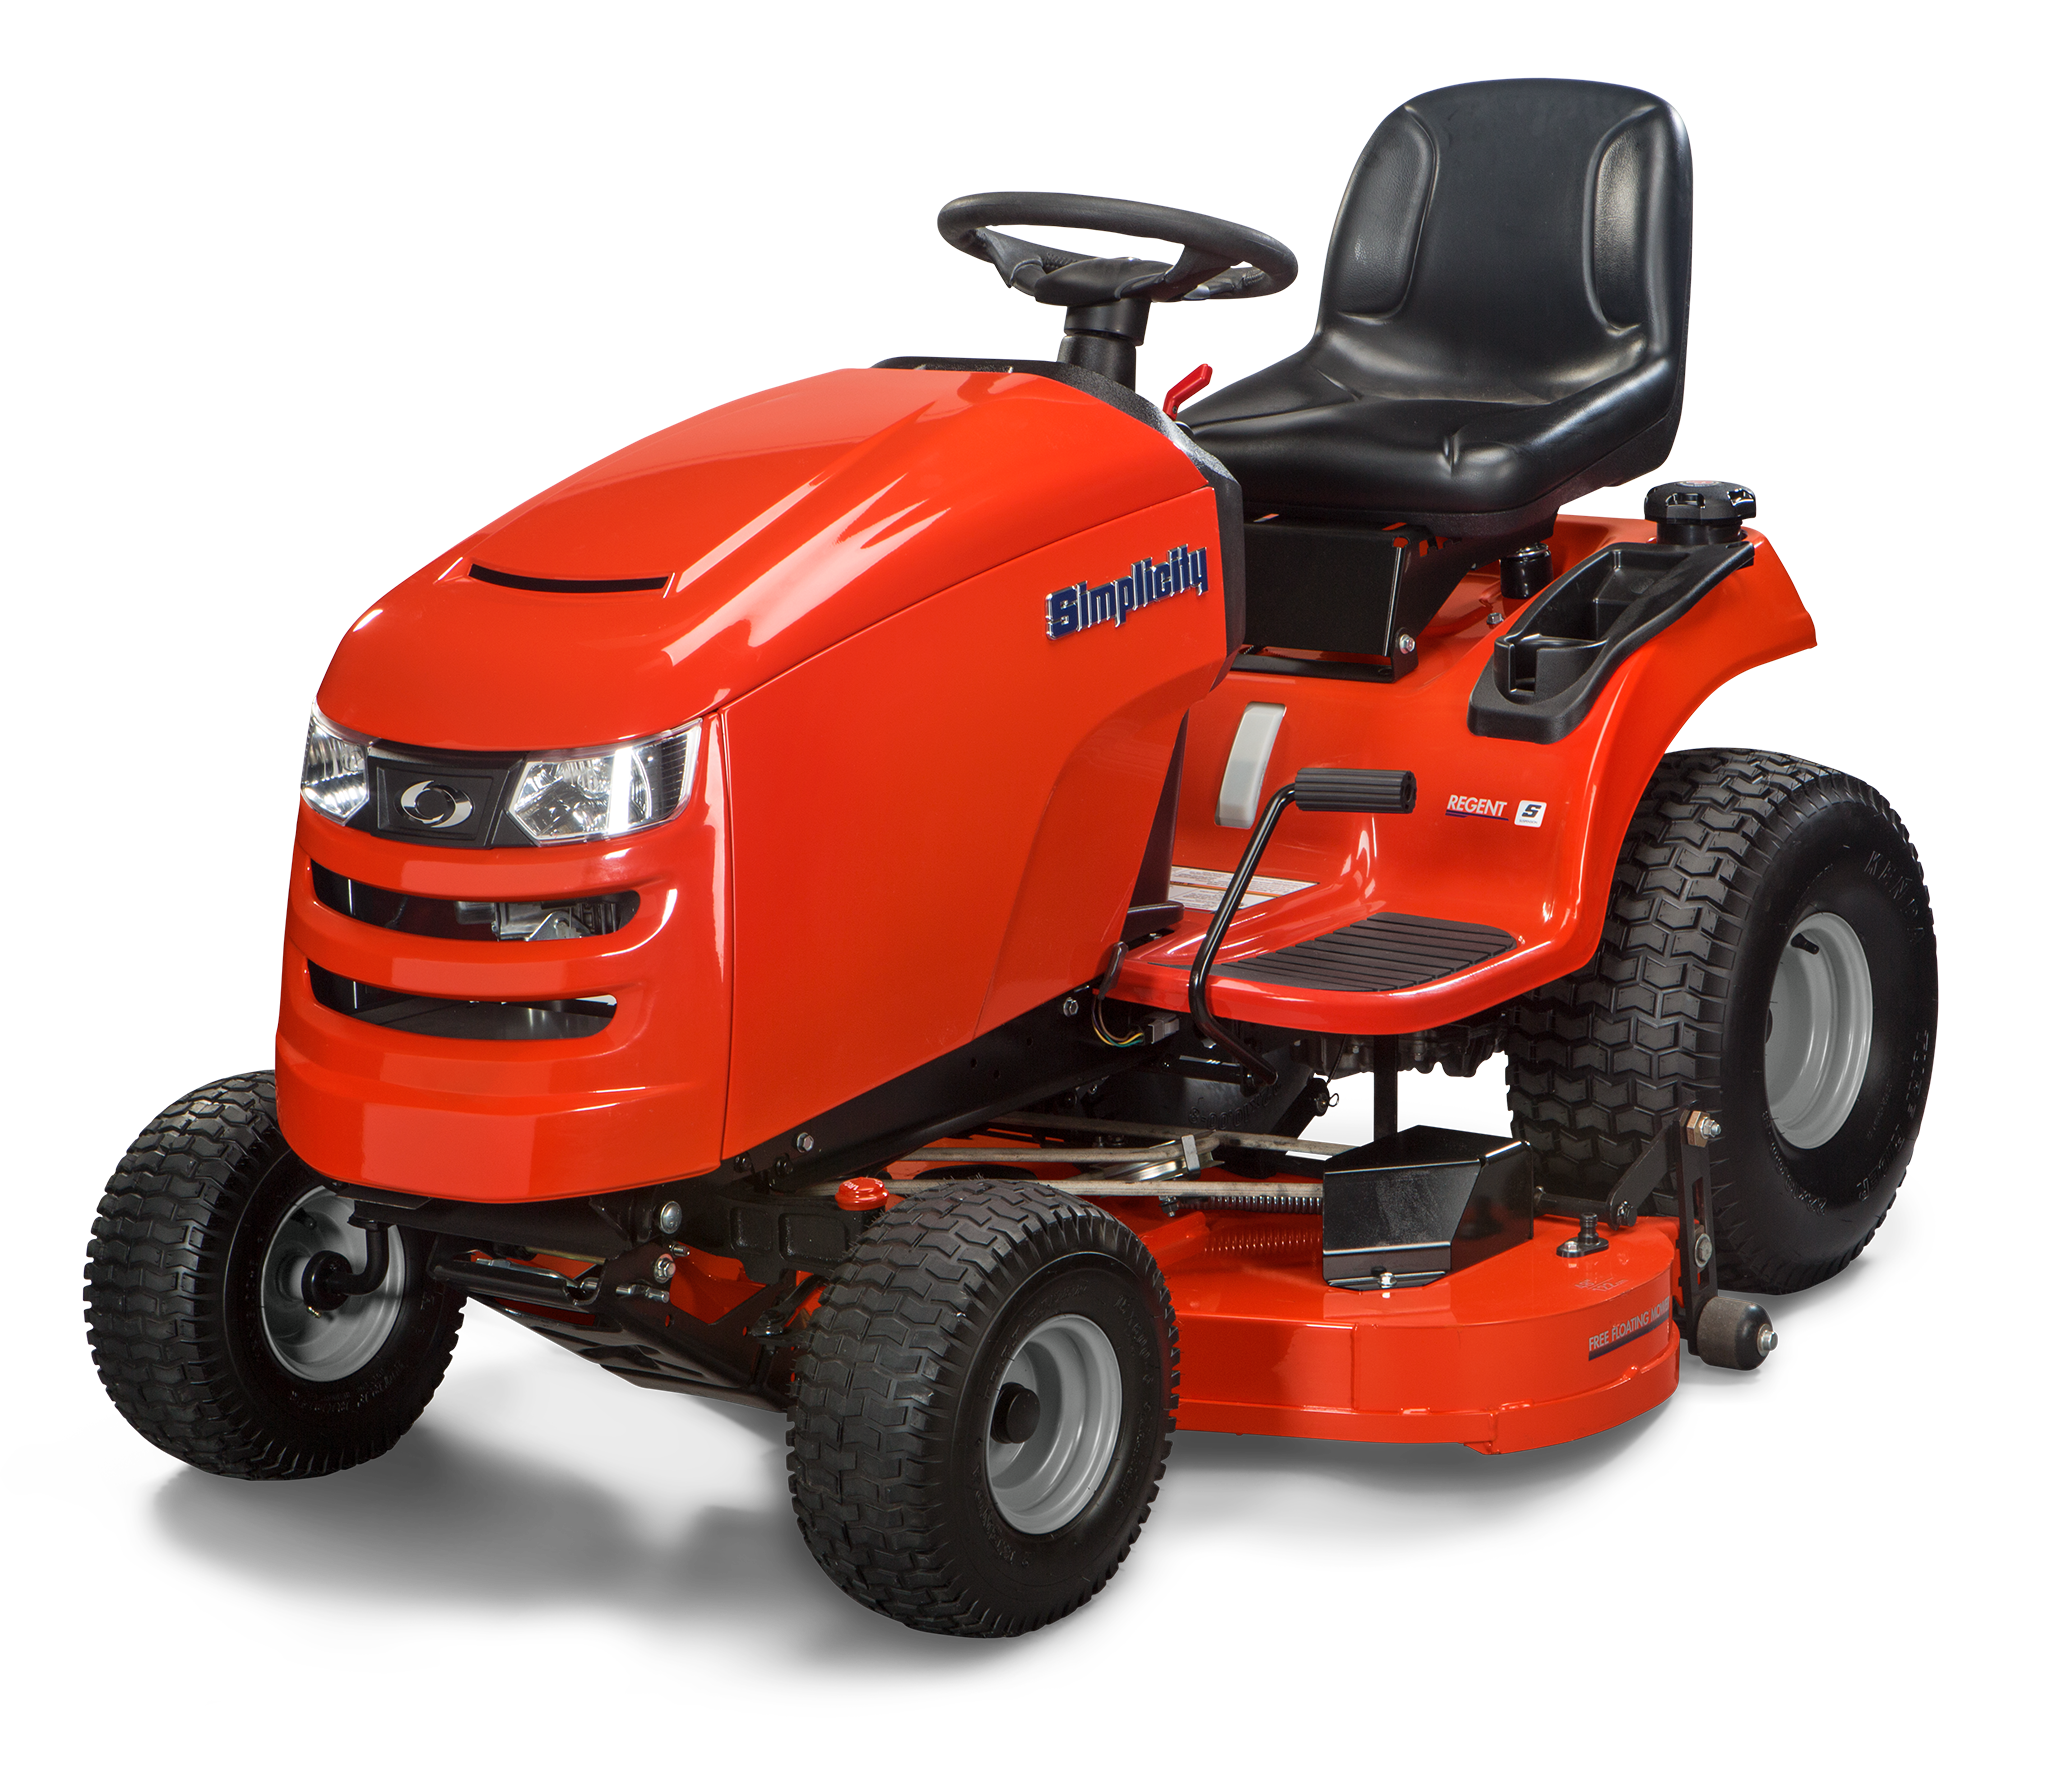 Simplicity Regent 32 Gross HP / 724cc B&S V-Twin w/38 Mower